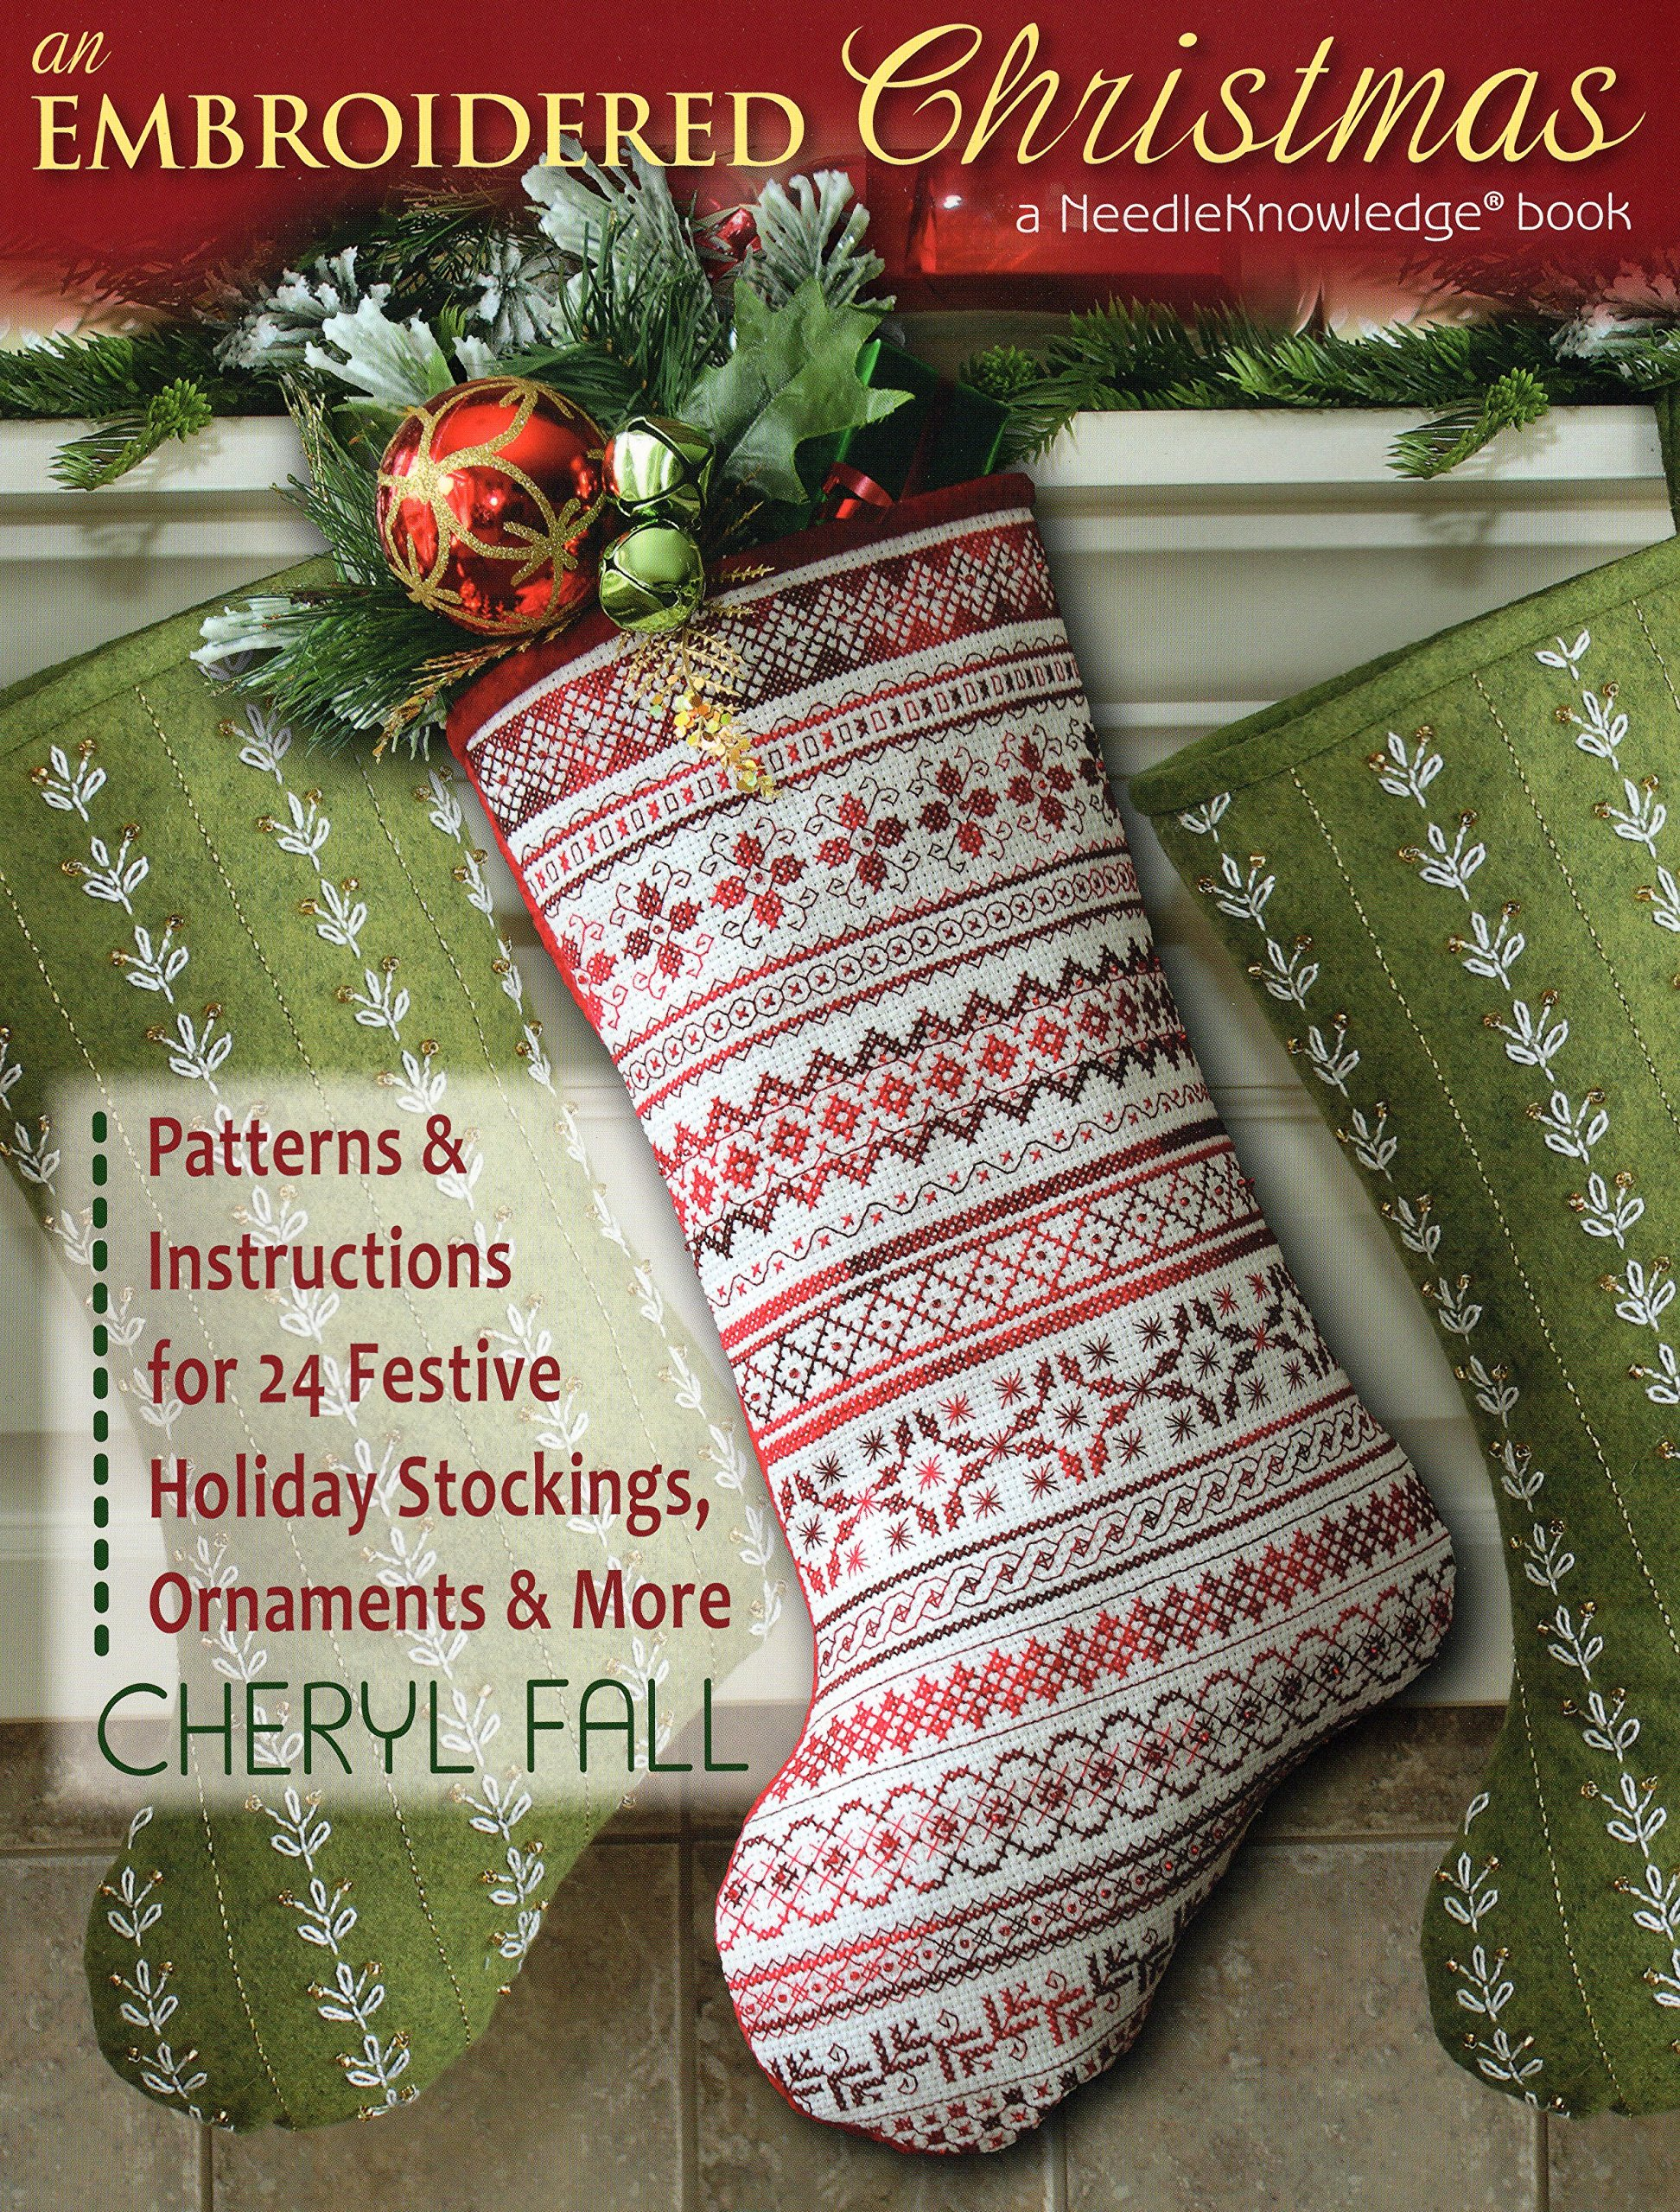 an embroidered christmas patterns instructions for 24 festive holiday stockings ornaments more cheryl fall 0011557014365 amazoncom books - Embroidered Christmas Ornaments